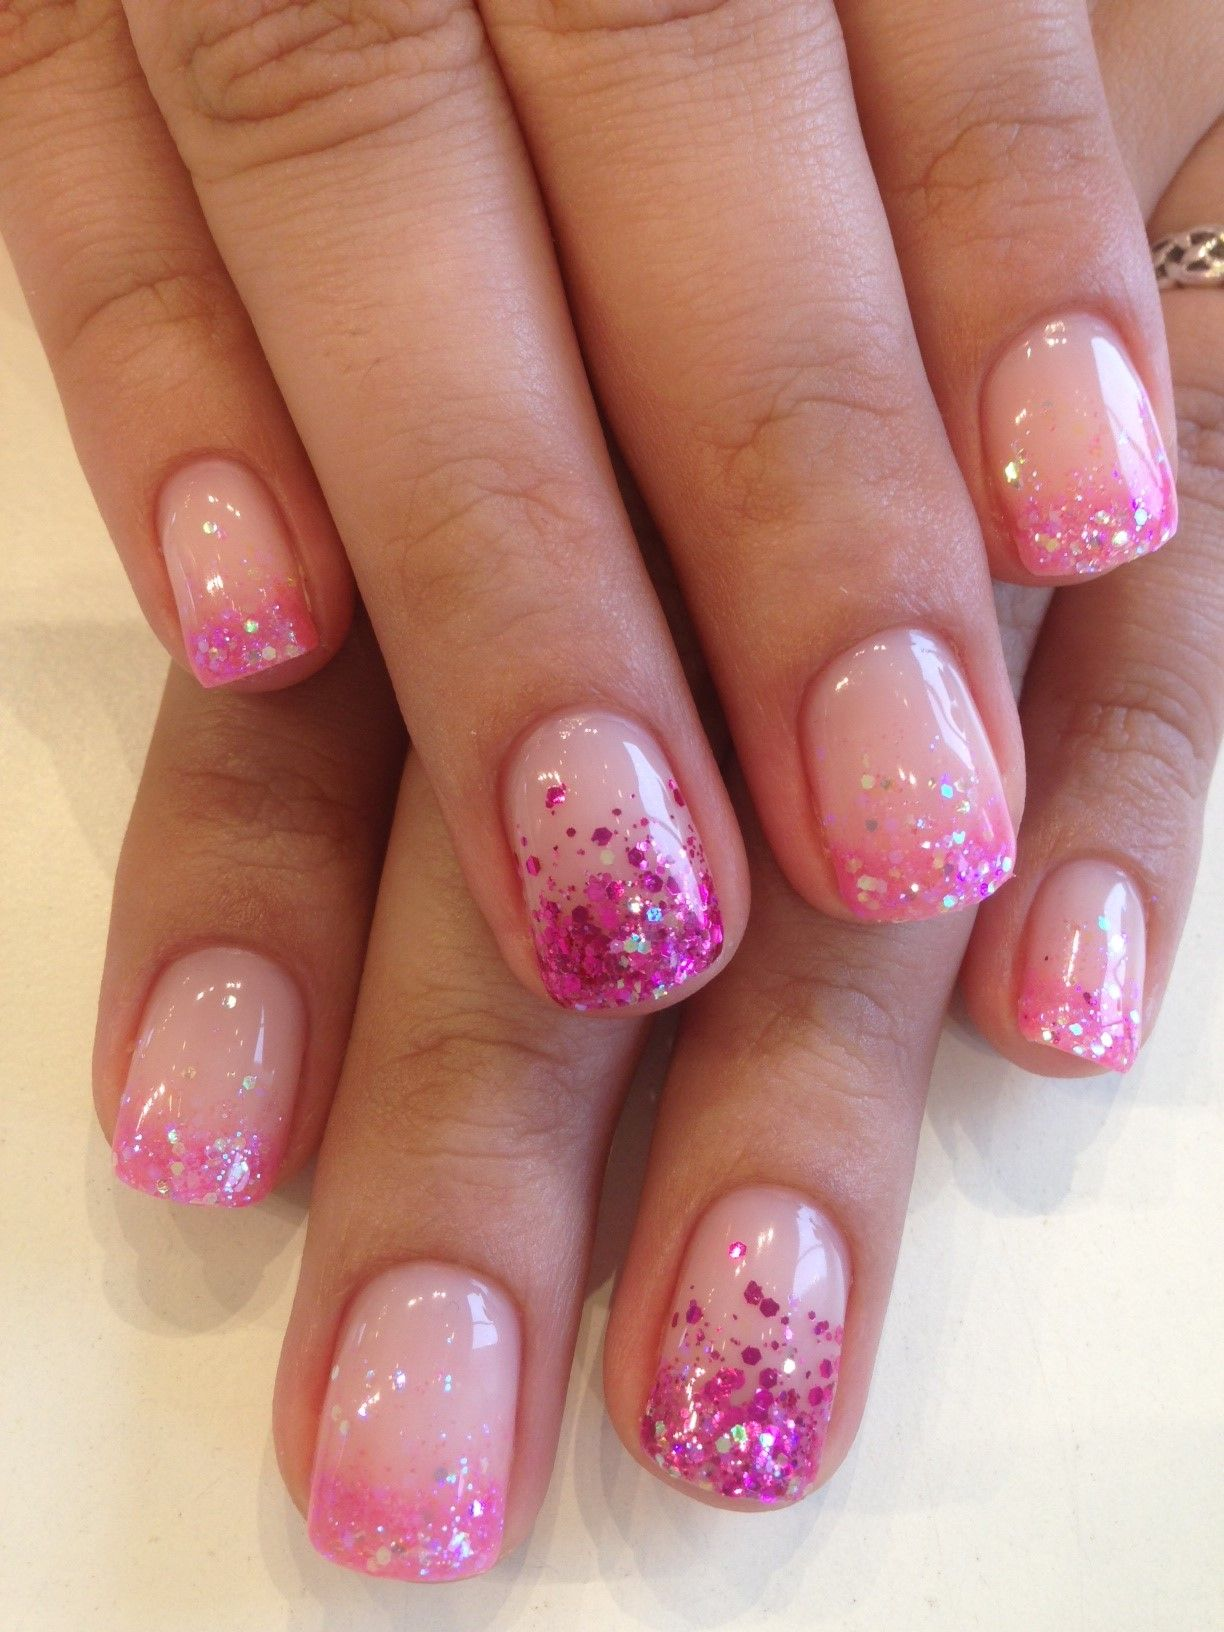 pink glitter french tips